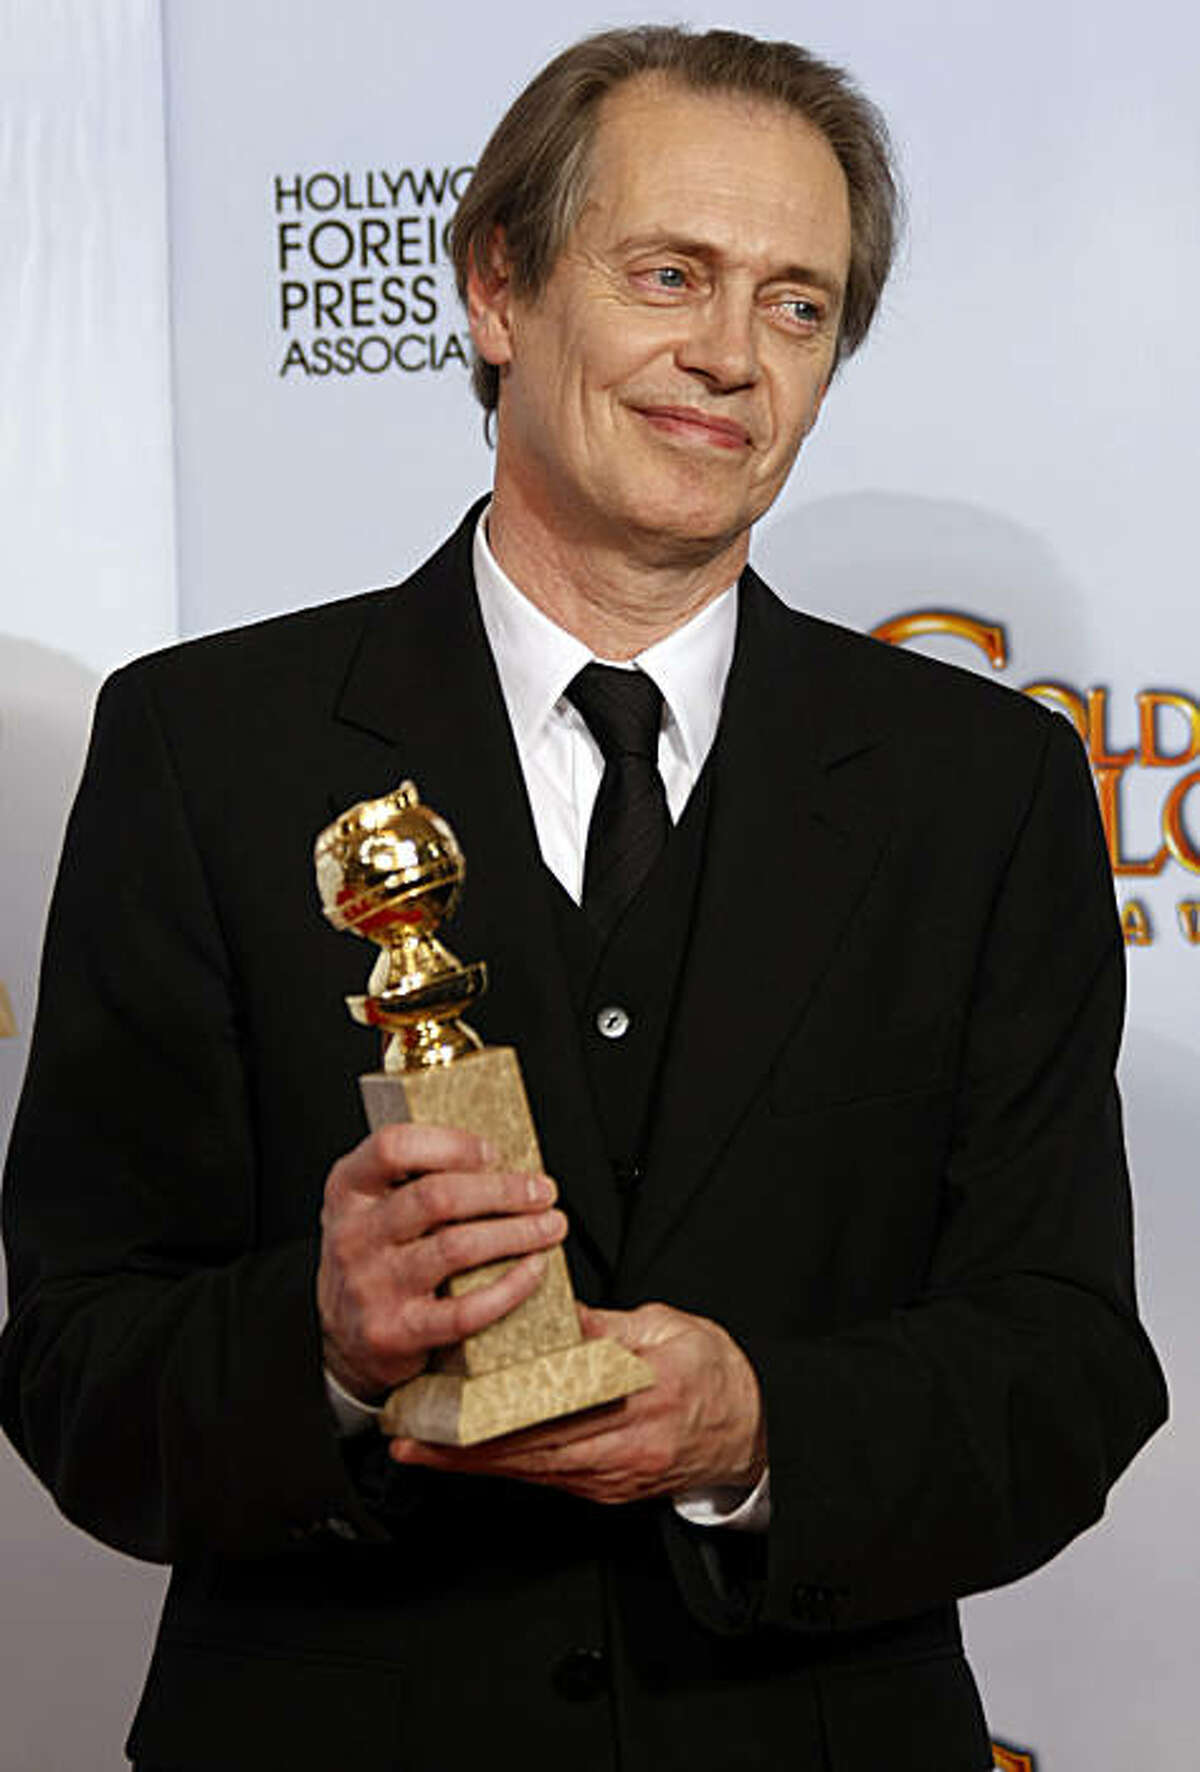 Steve Buscemi with his award at the 68th Annual Golden Globe Awards on Sunday, January 16, 2011, at the Beverly Hilton Hotel in Beverly Hills, California. (Brian van der Brug/Los Angeles Times/MCT)